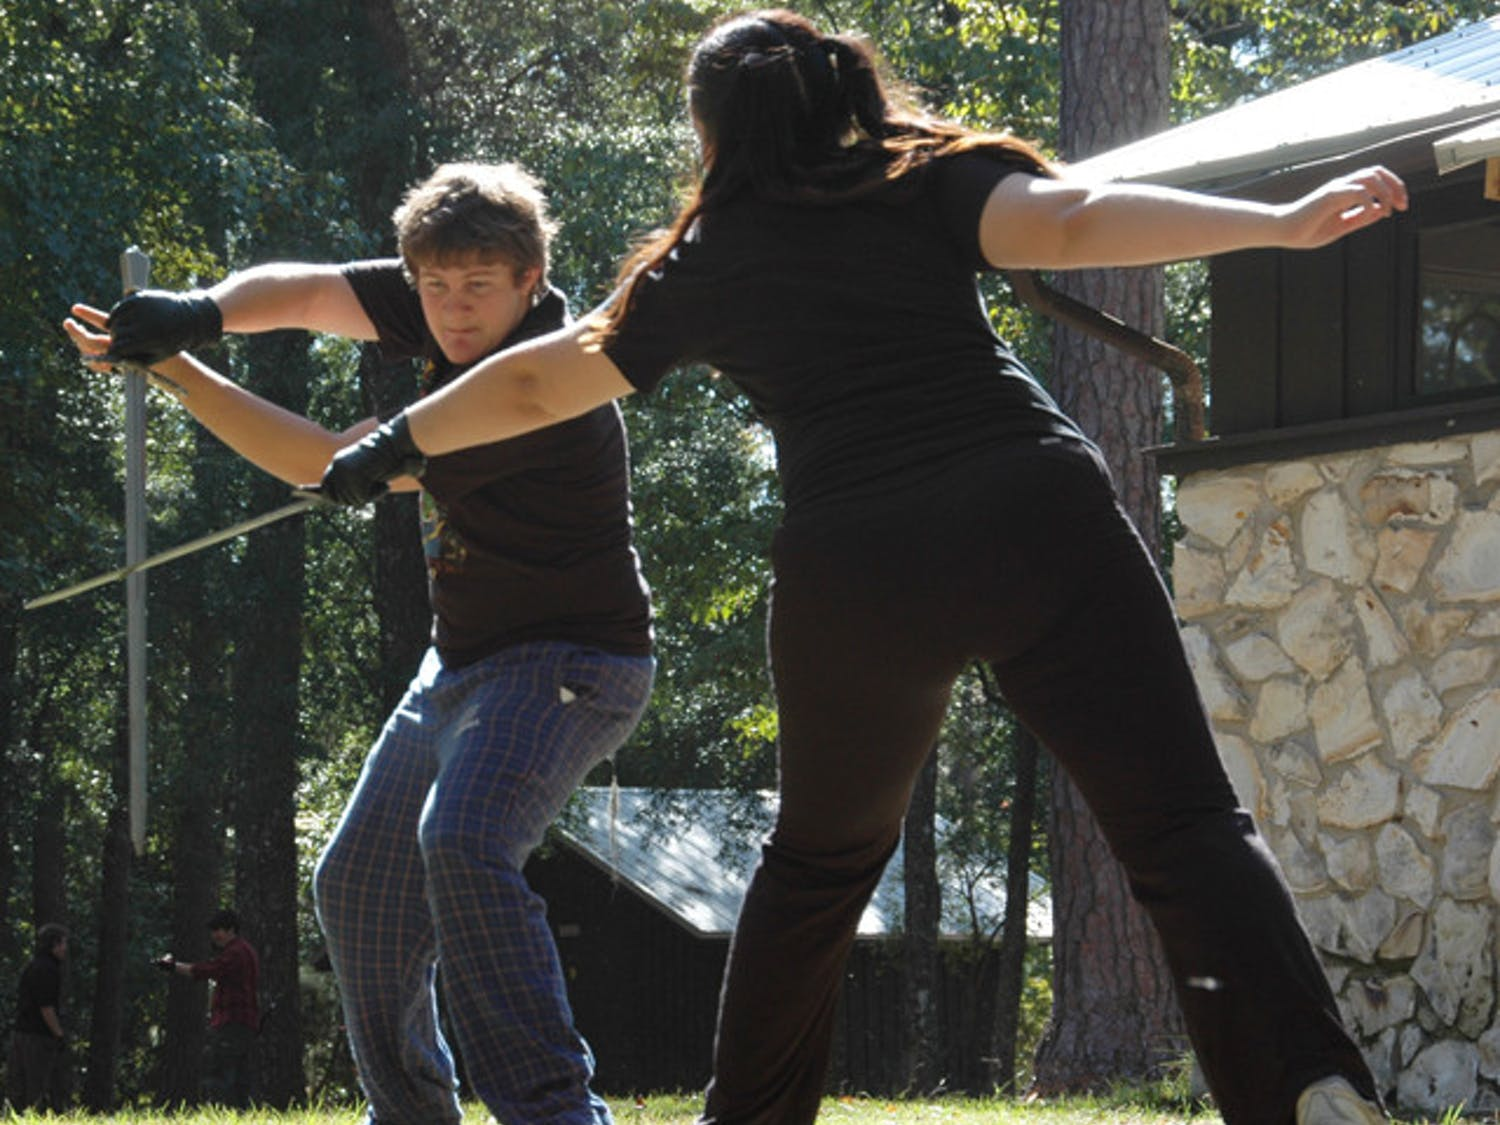 Chet Scott and Shael Millheim practice fighting with swords at O'Leno State Park. Scott and Millheim are part of the Thieves Guild, a group that does most of the performances at the annual Hoggetowne Medieval Faire.